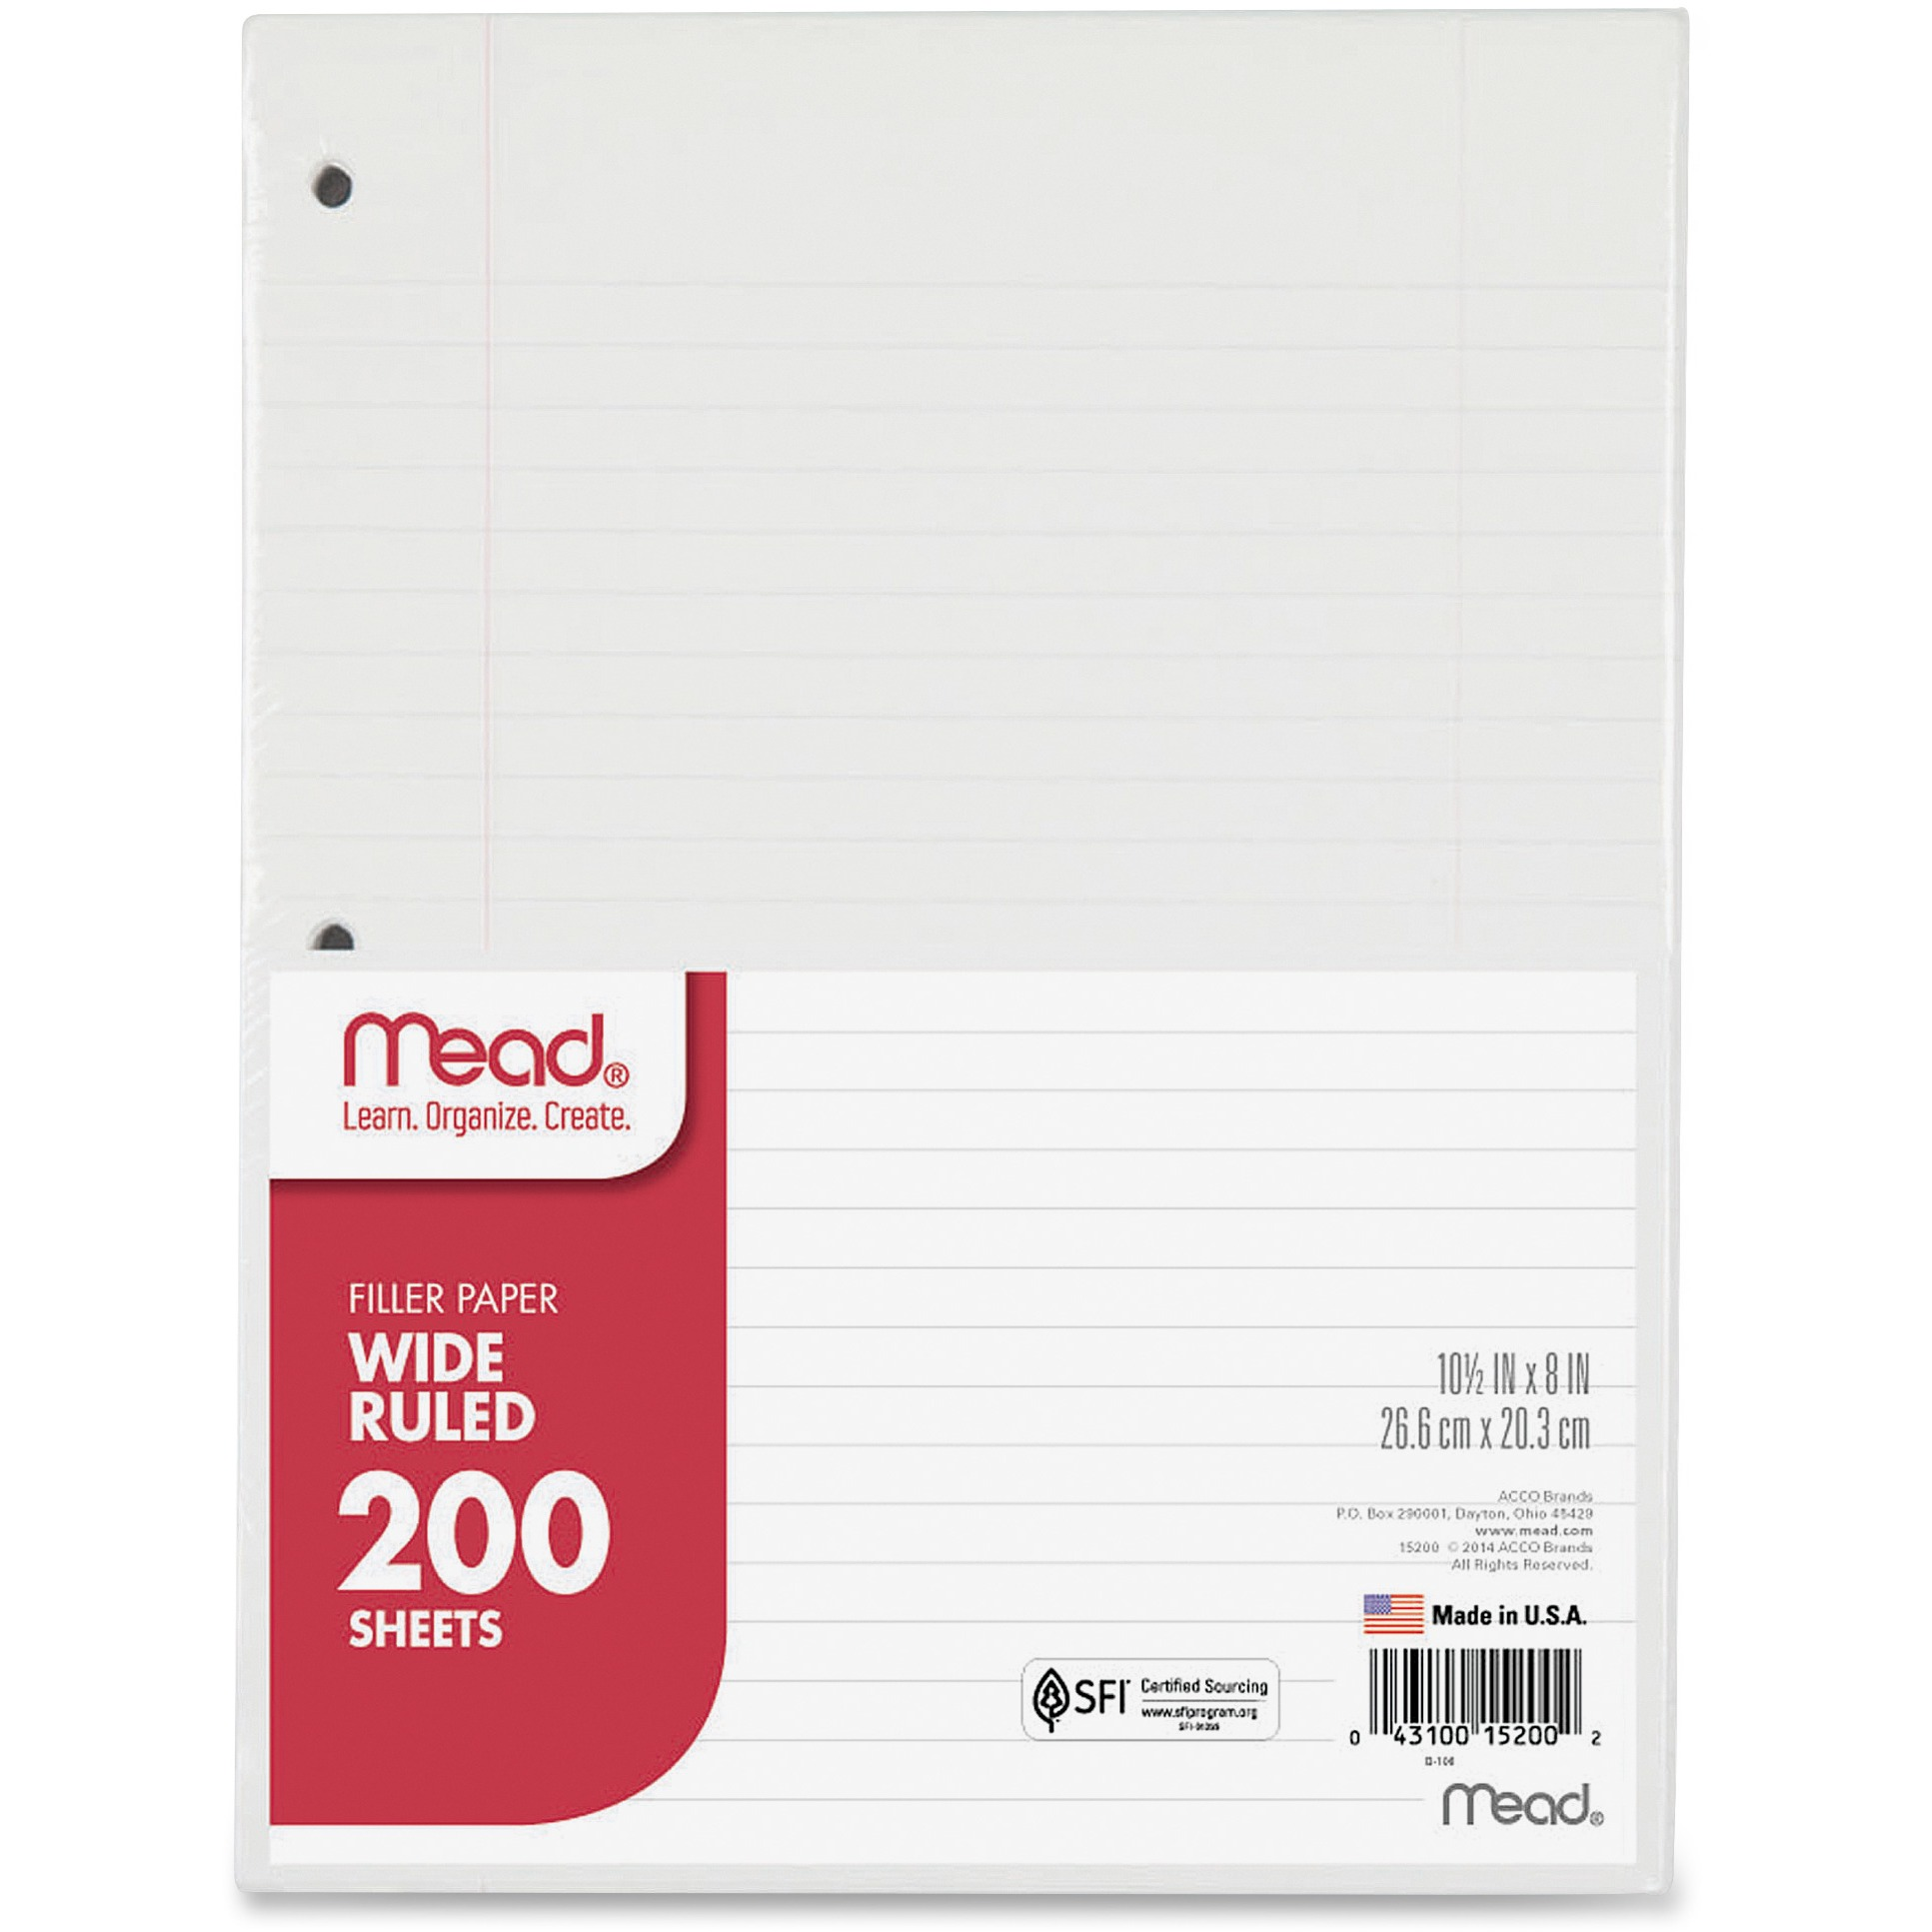 Mead 3-Hole Punched Wide-ruled Filler Paper, 1 / Pack (Quantity)